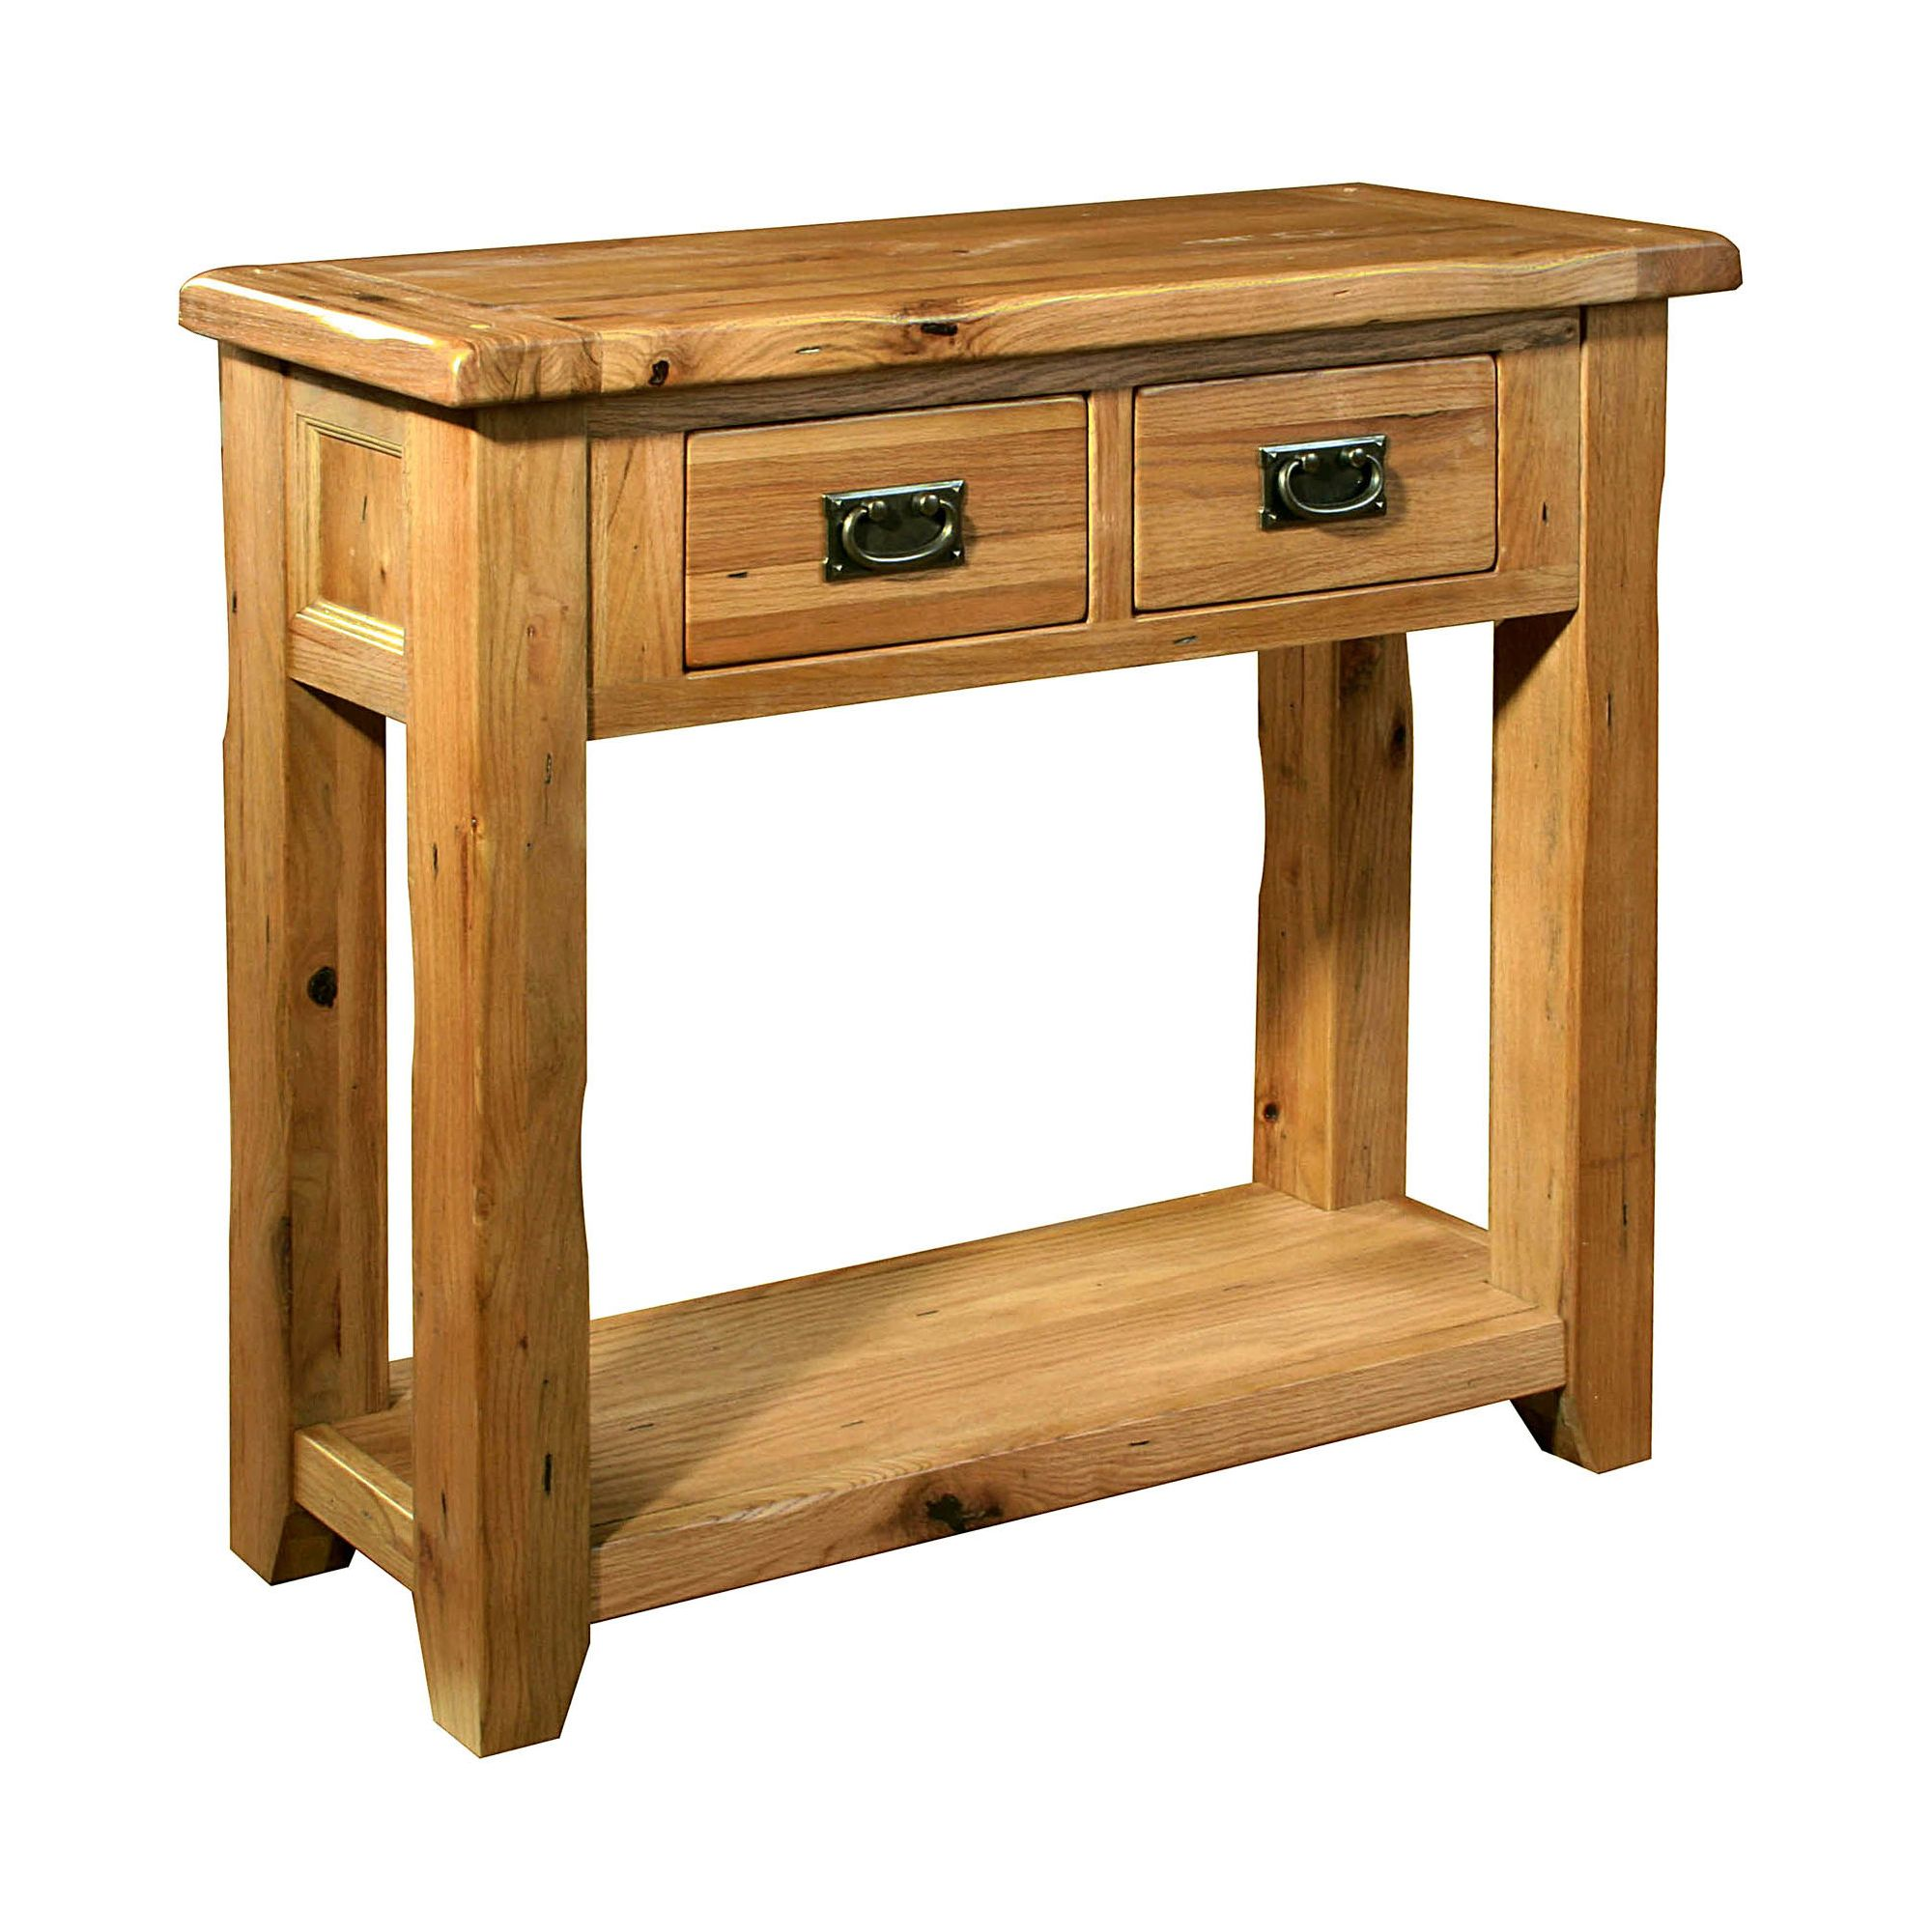 Kelburn Furniture Bordeaux Small Console Table in Medium Oak Stain and Satin Lacquer at Tesco Direct